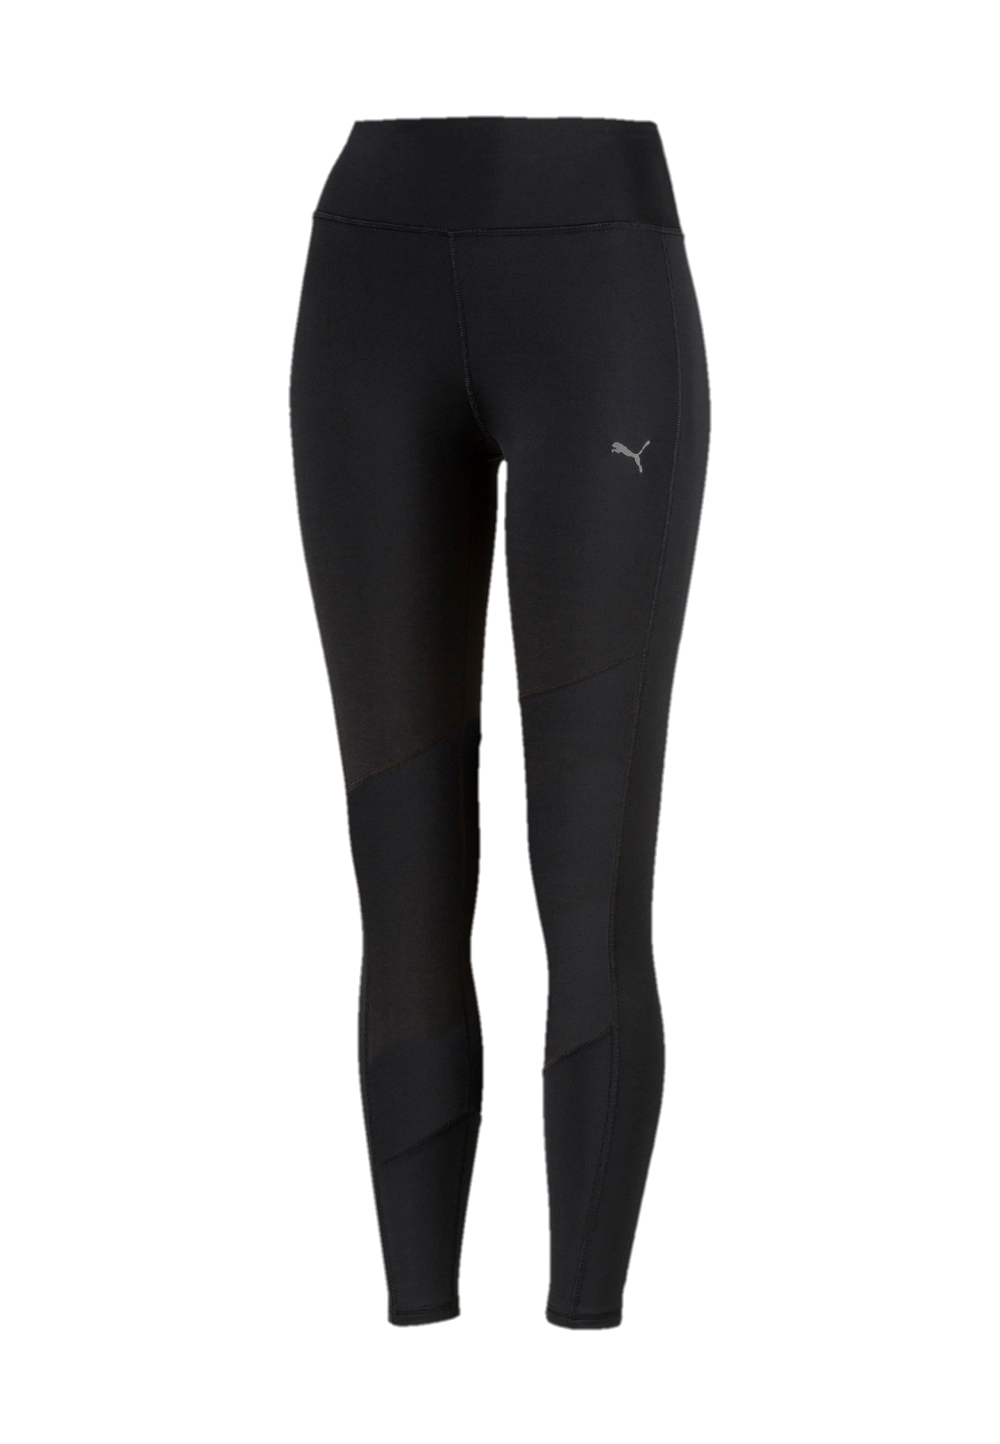 Puma Tights Alays On Solid schwarz | Sportbekleidung > Sporthosen > Tights | Schwarz | Puma